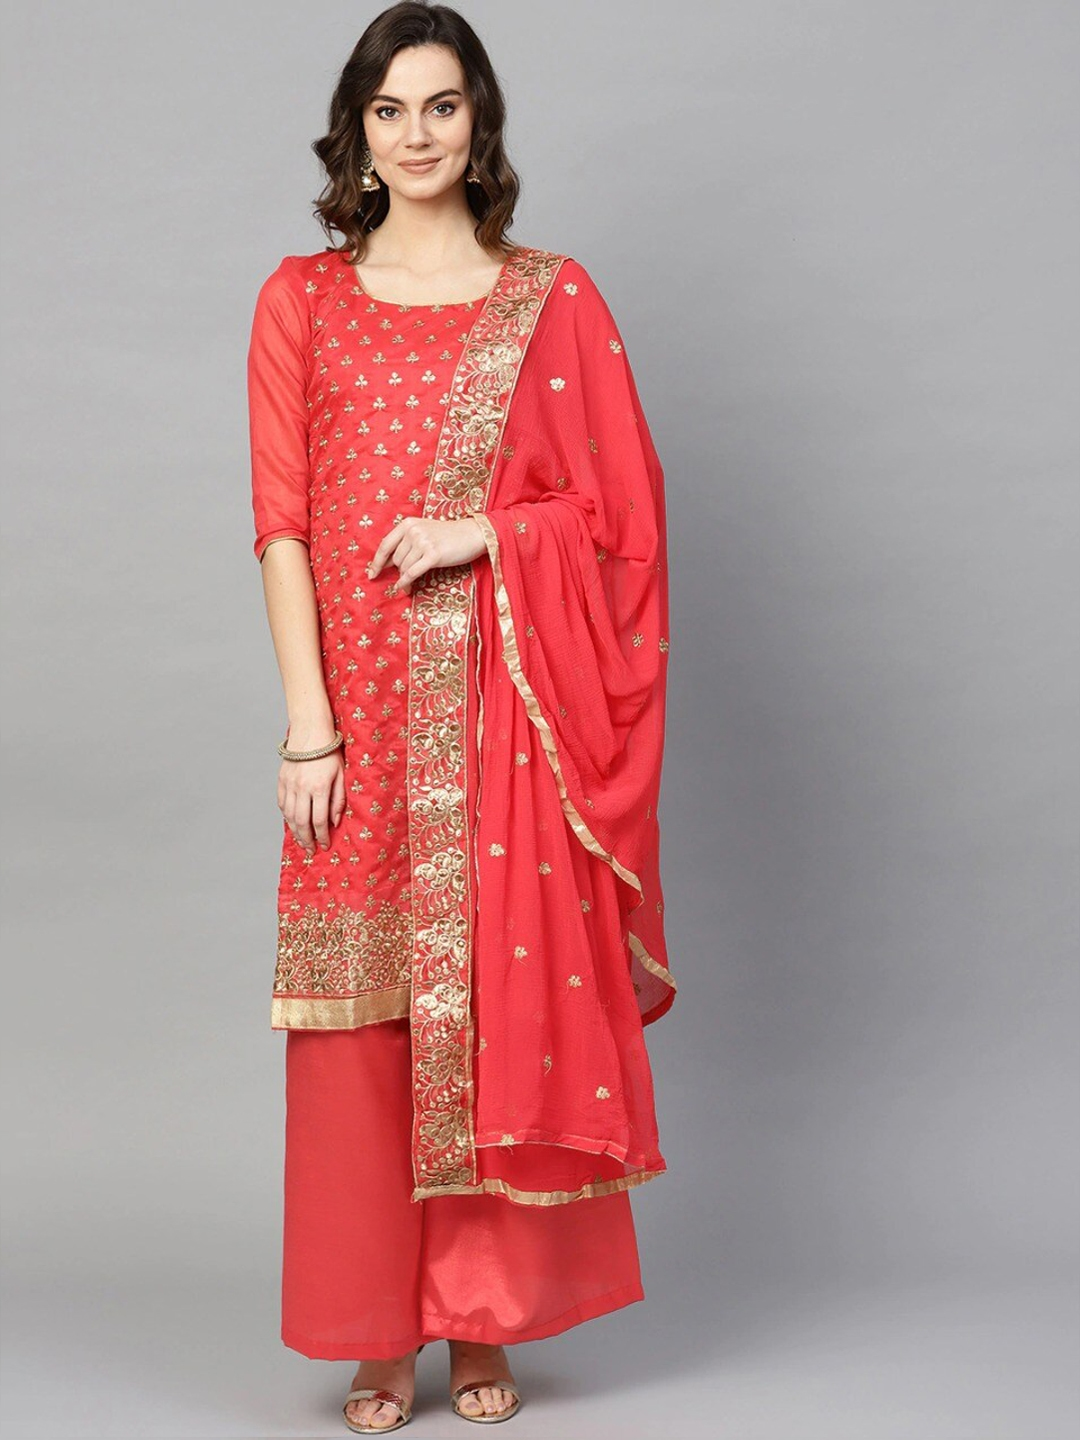 Ishin Coral   Gold Toned Cotton Blend Unstitched Dress Material with Chiffon Dupatta